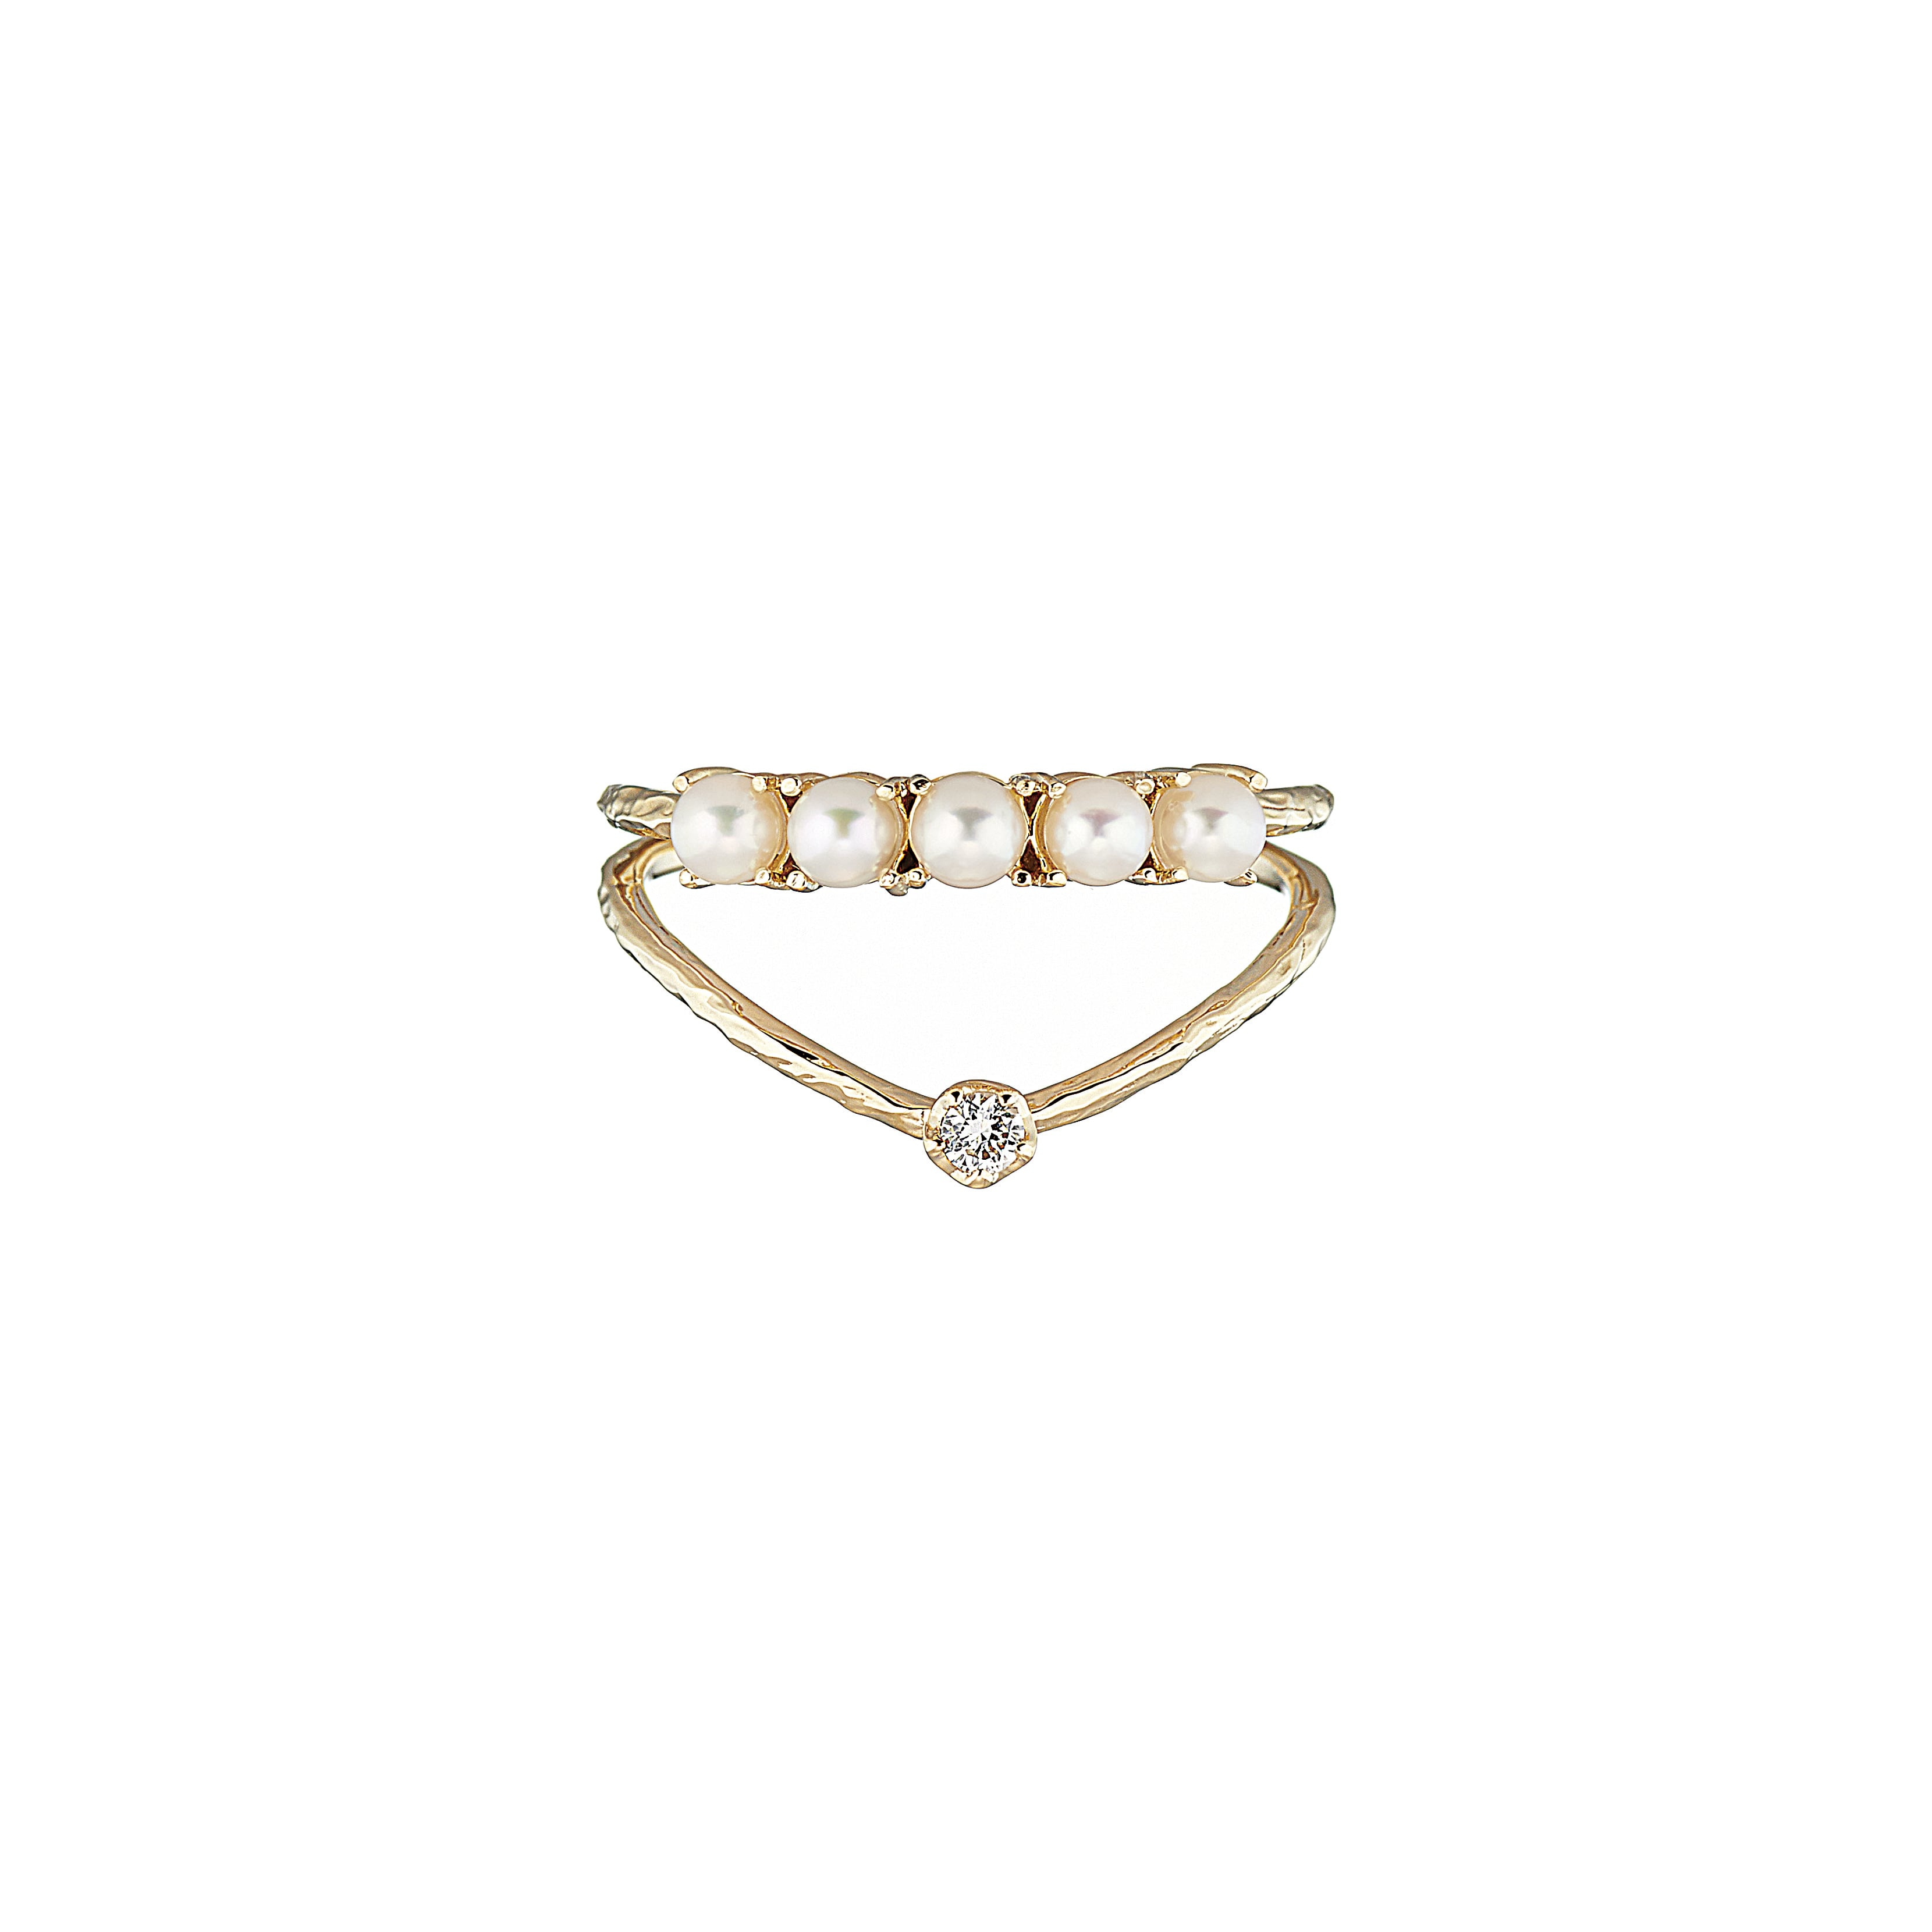 K18 Double Ring with Pearls and a Diamond